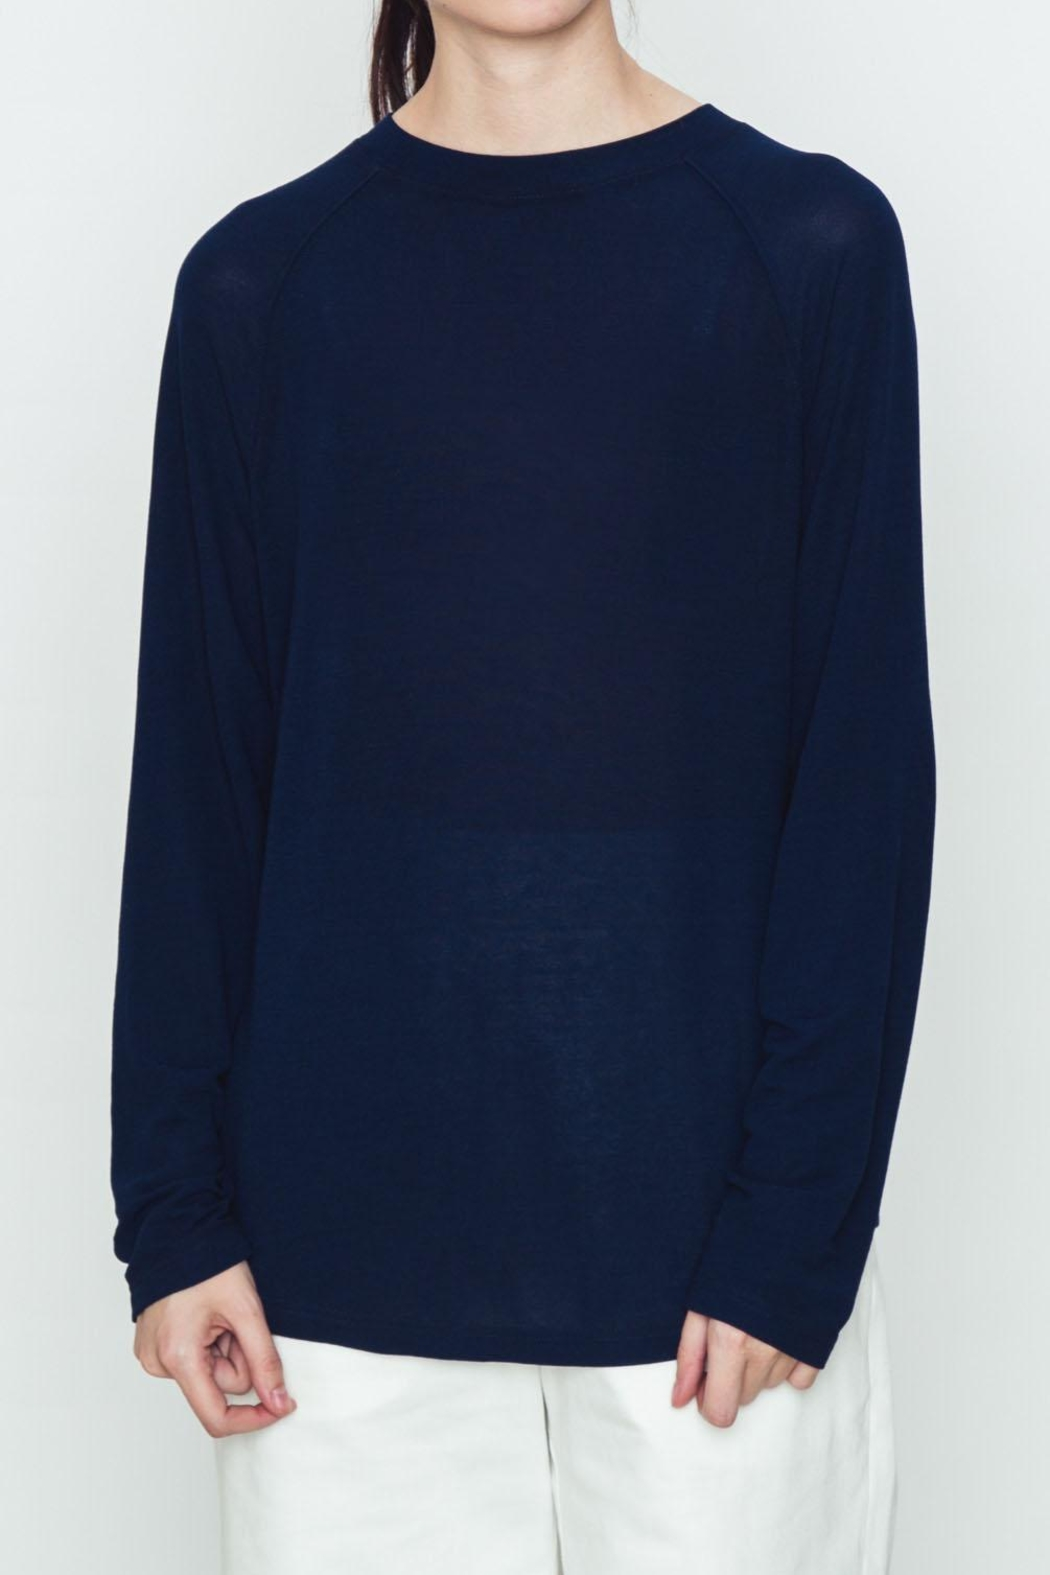 Movint Pippit Pullover Top - Main Image